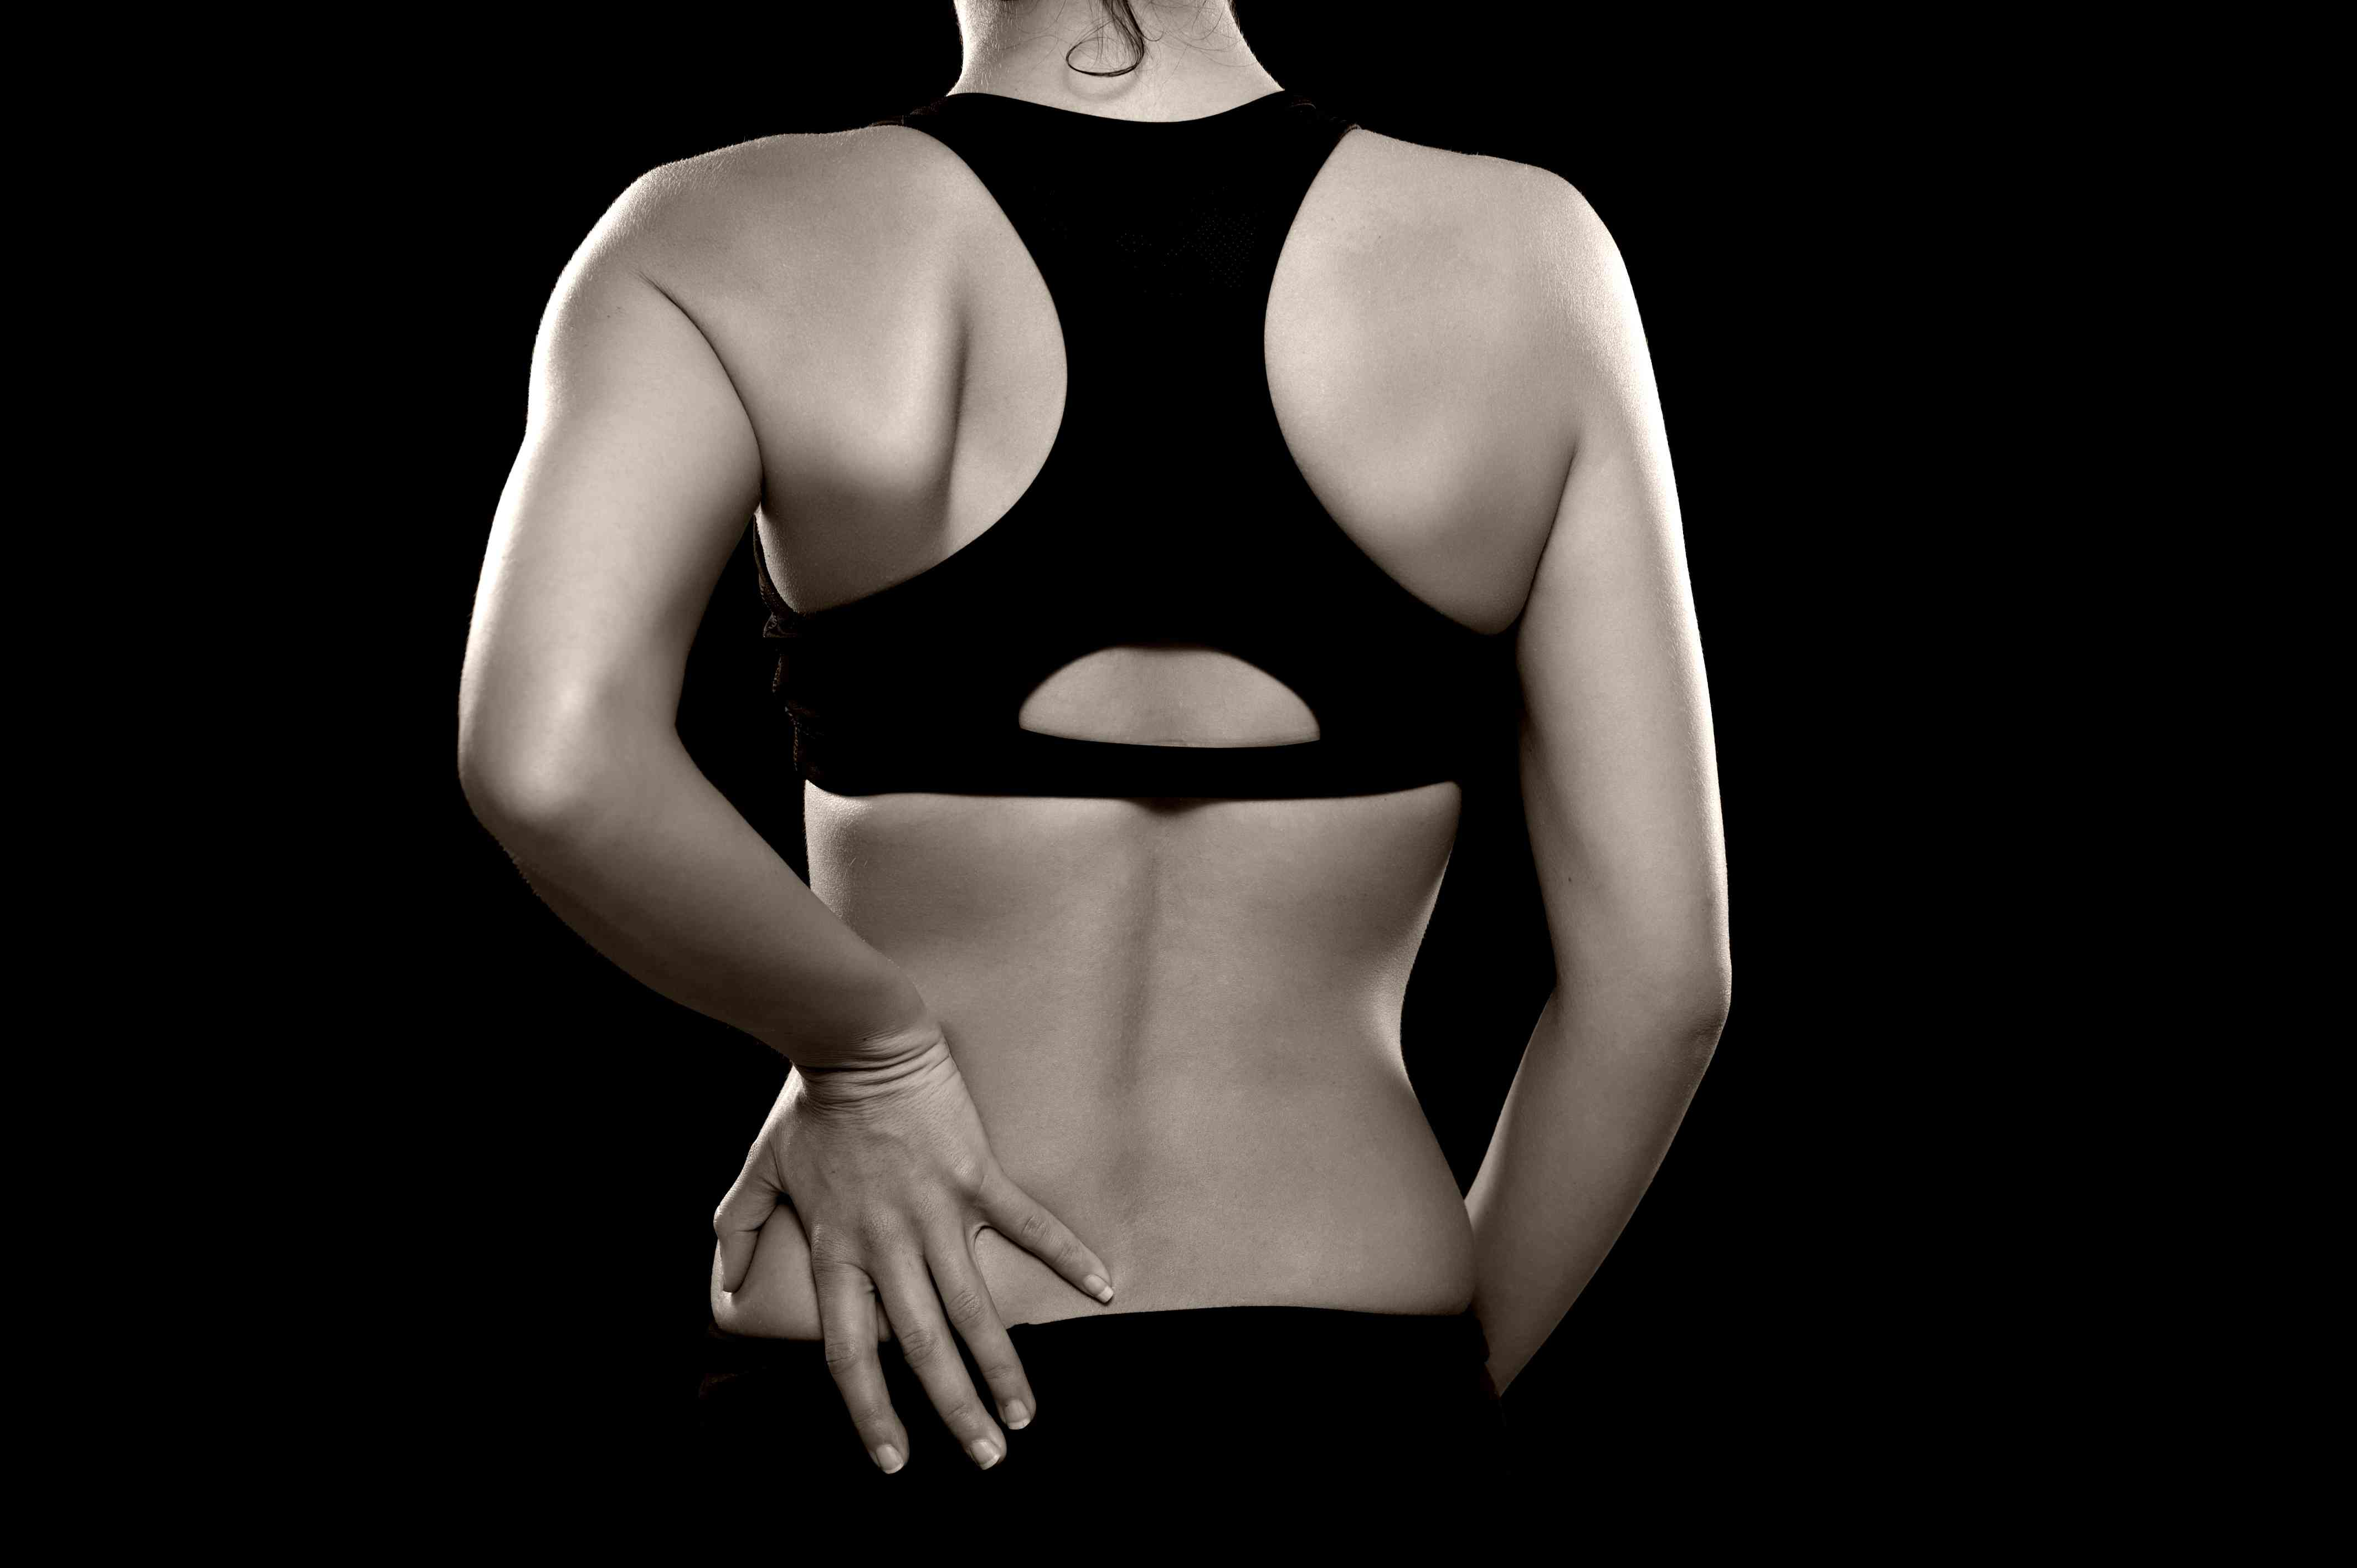 A woman holding her low back in pain